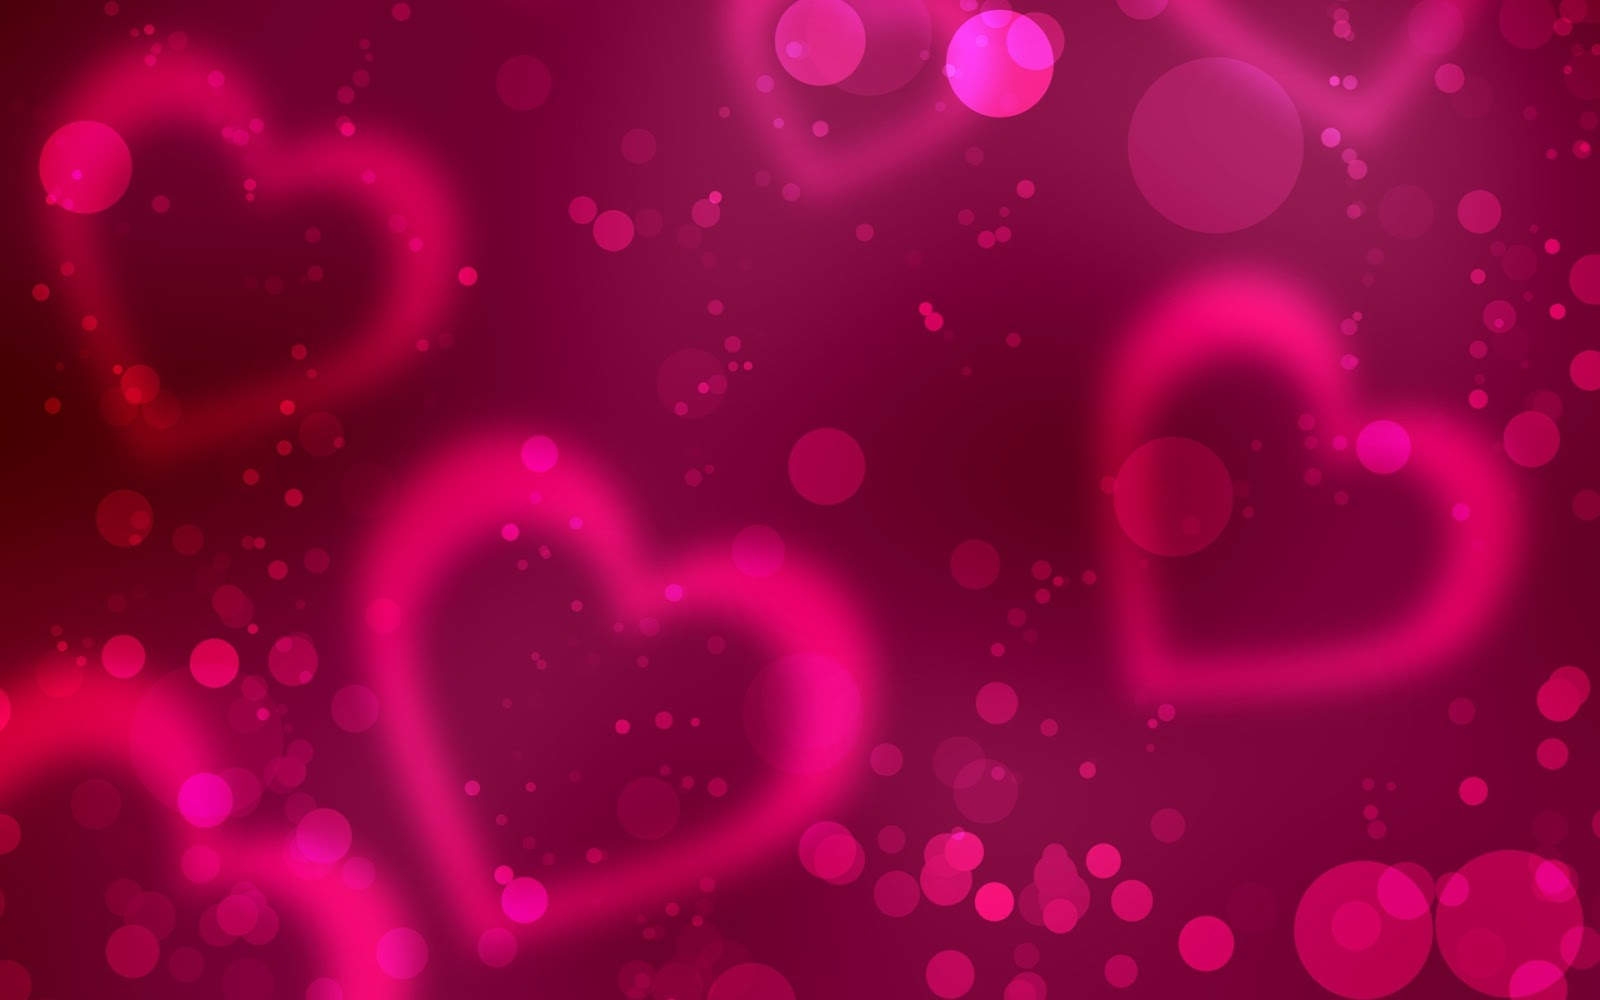 Love Wallpaper Hd 2014 : Love Wallpaper Backgrounds 19152 1600x1000 px ~ HDWallSource.com